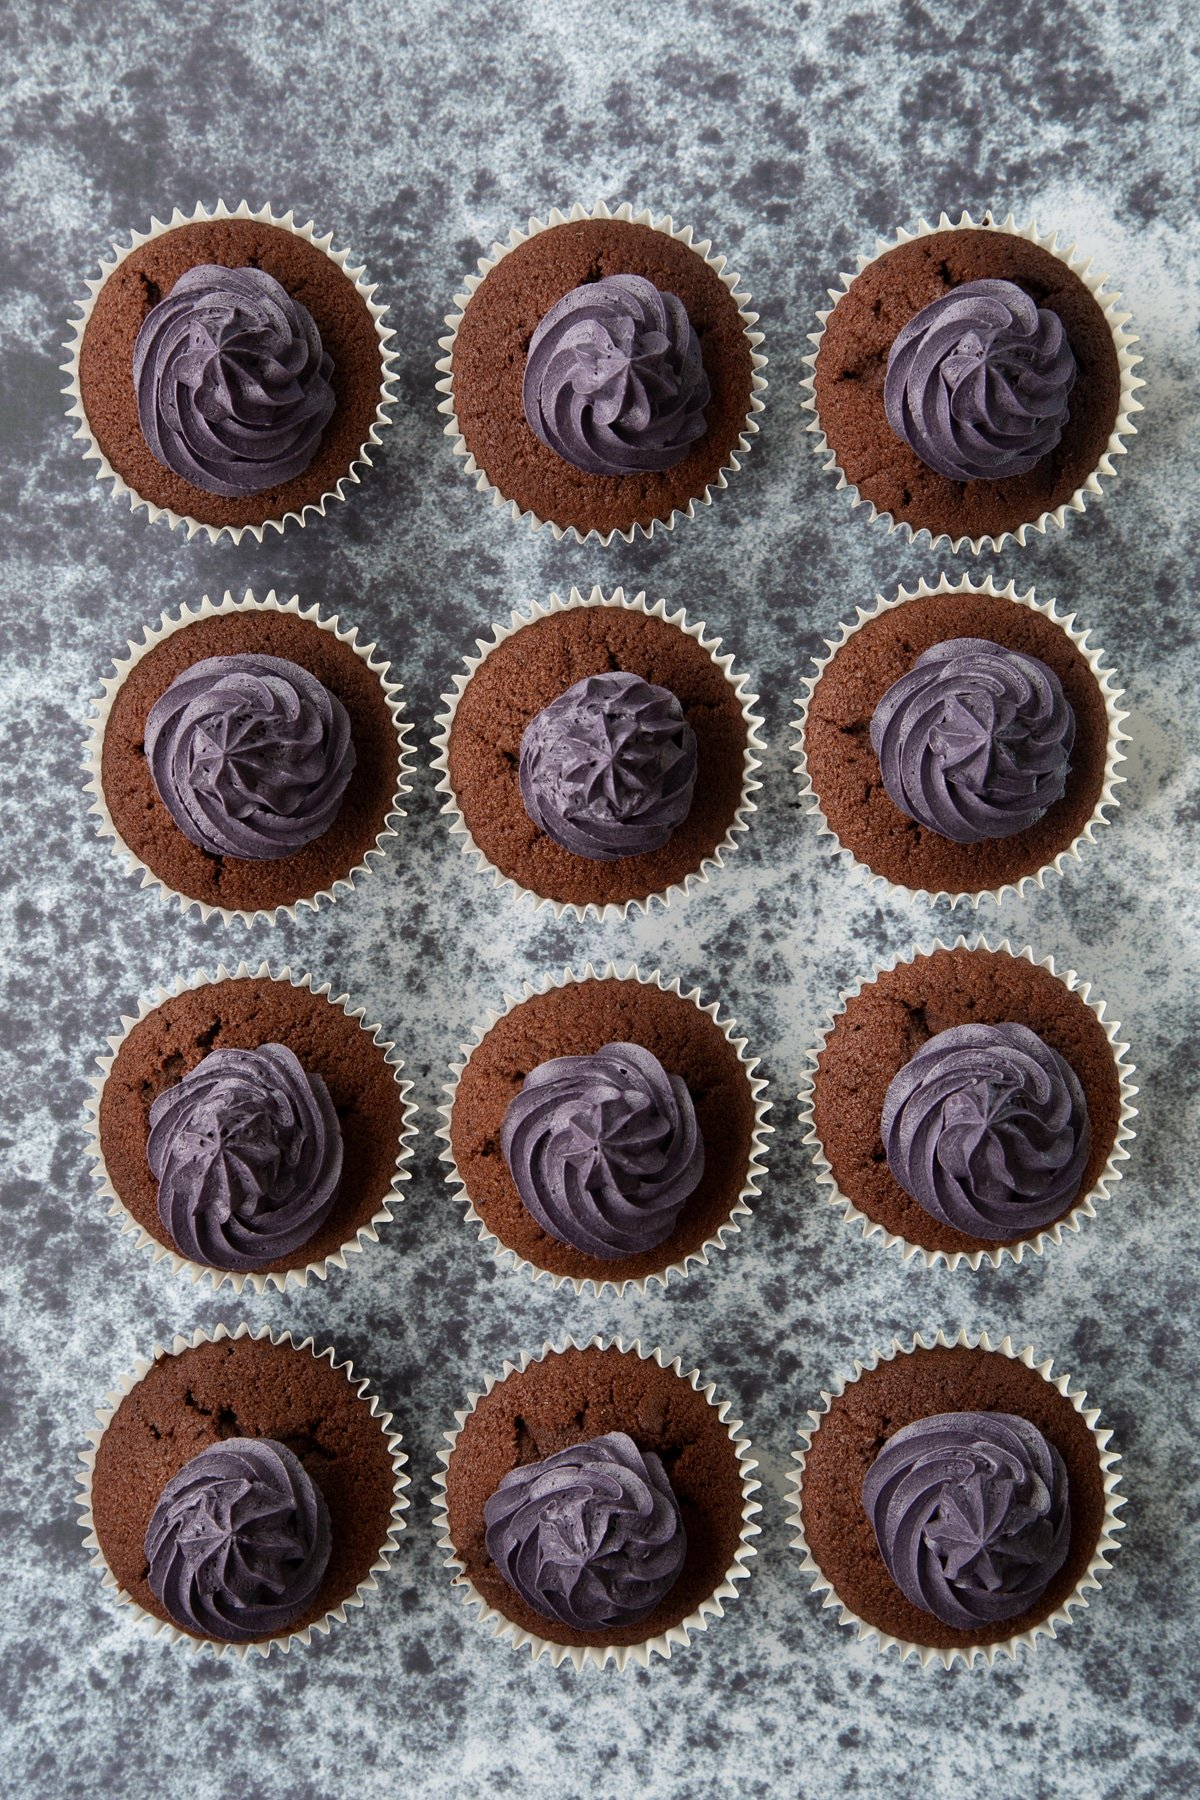 12 chocolate cupcakes with purple frosting on a dark background, shown from above.